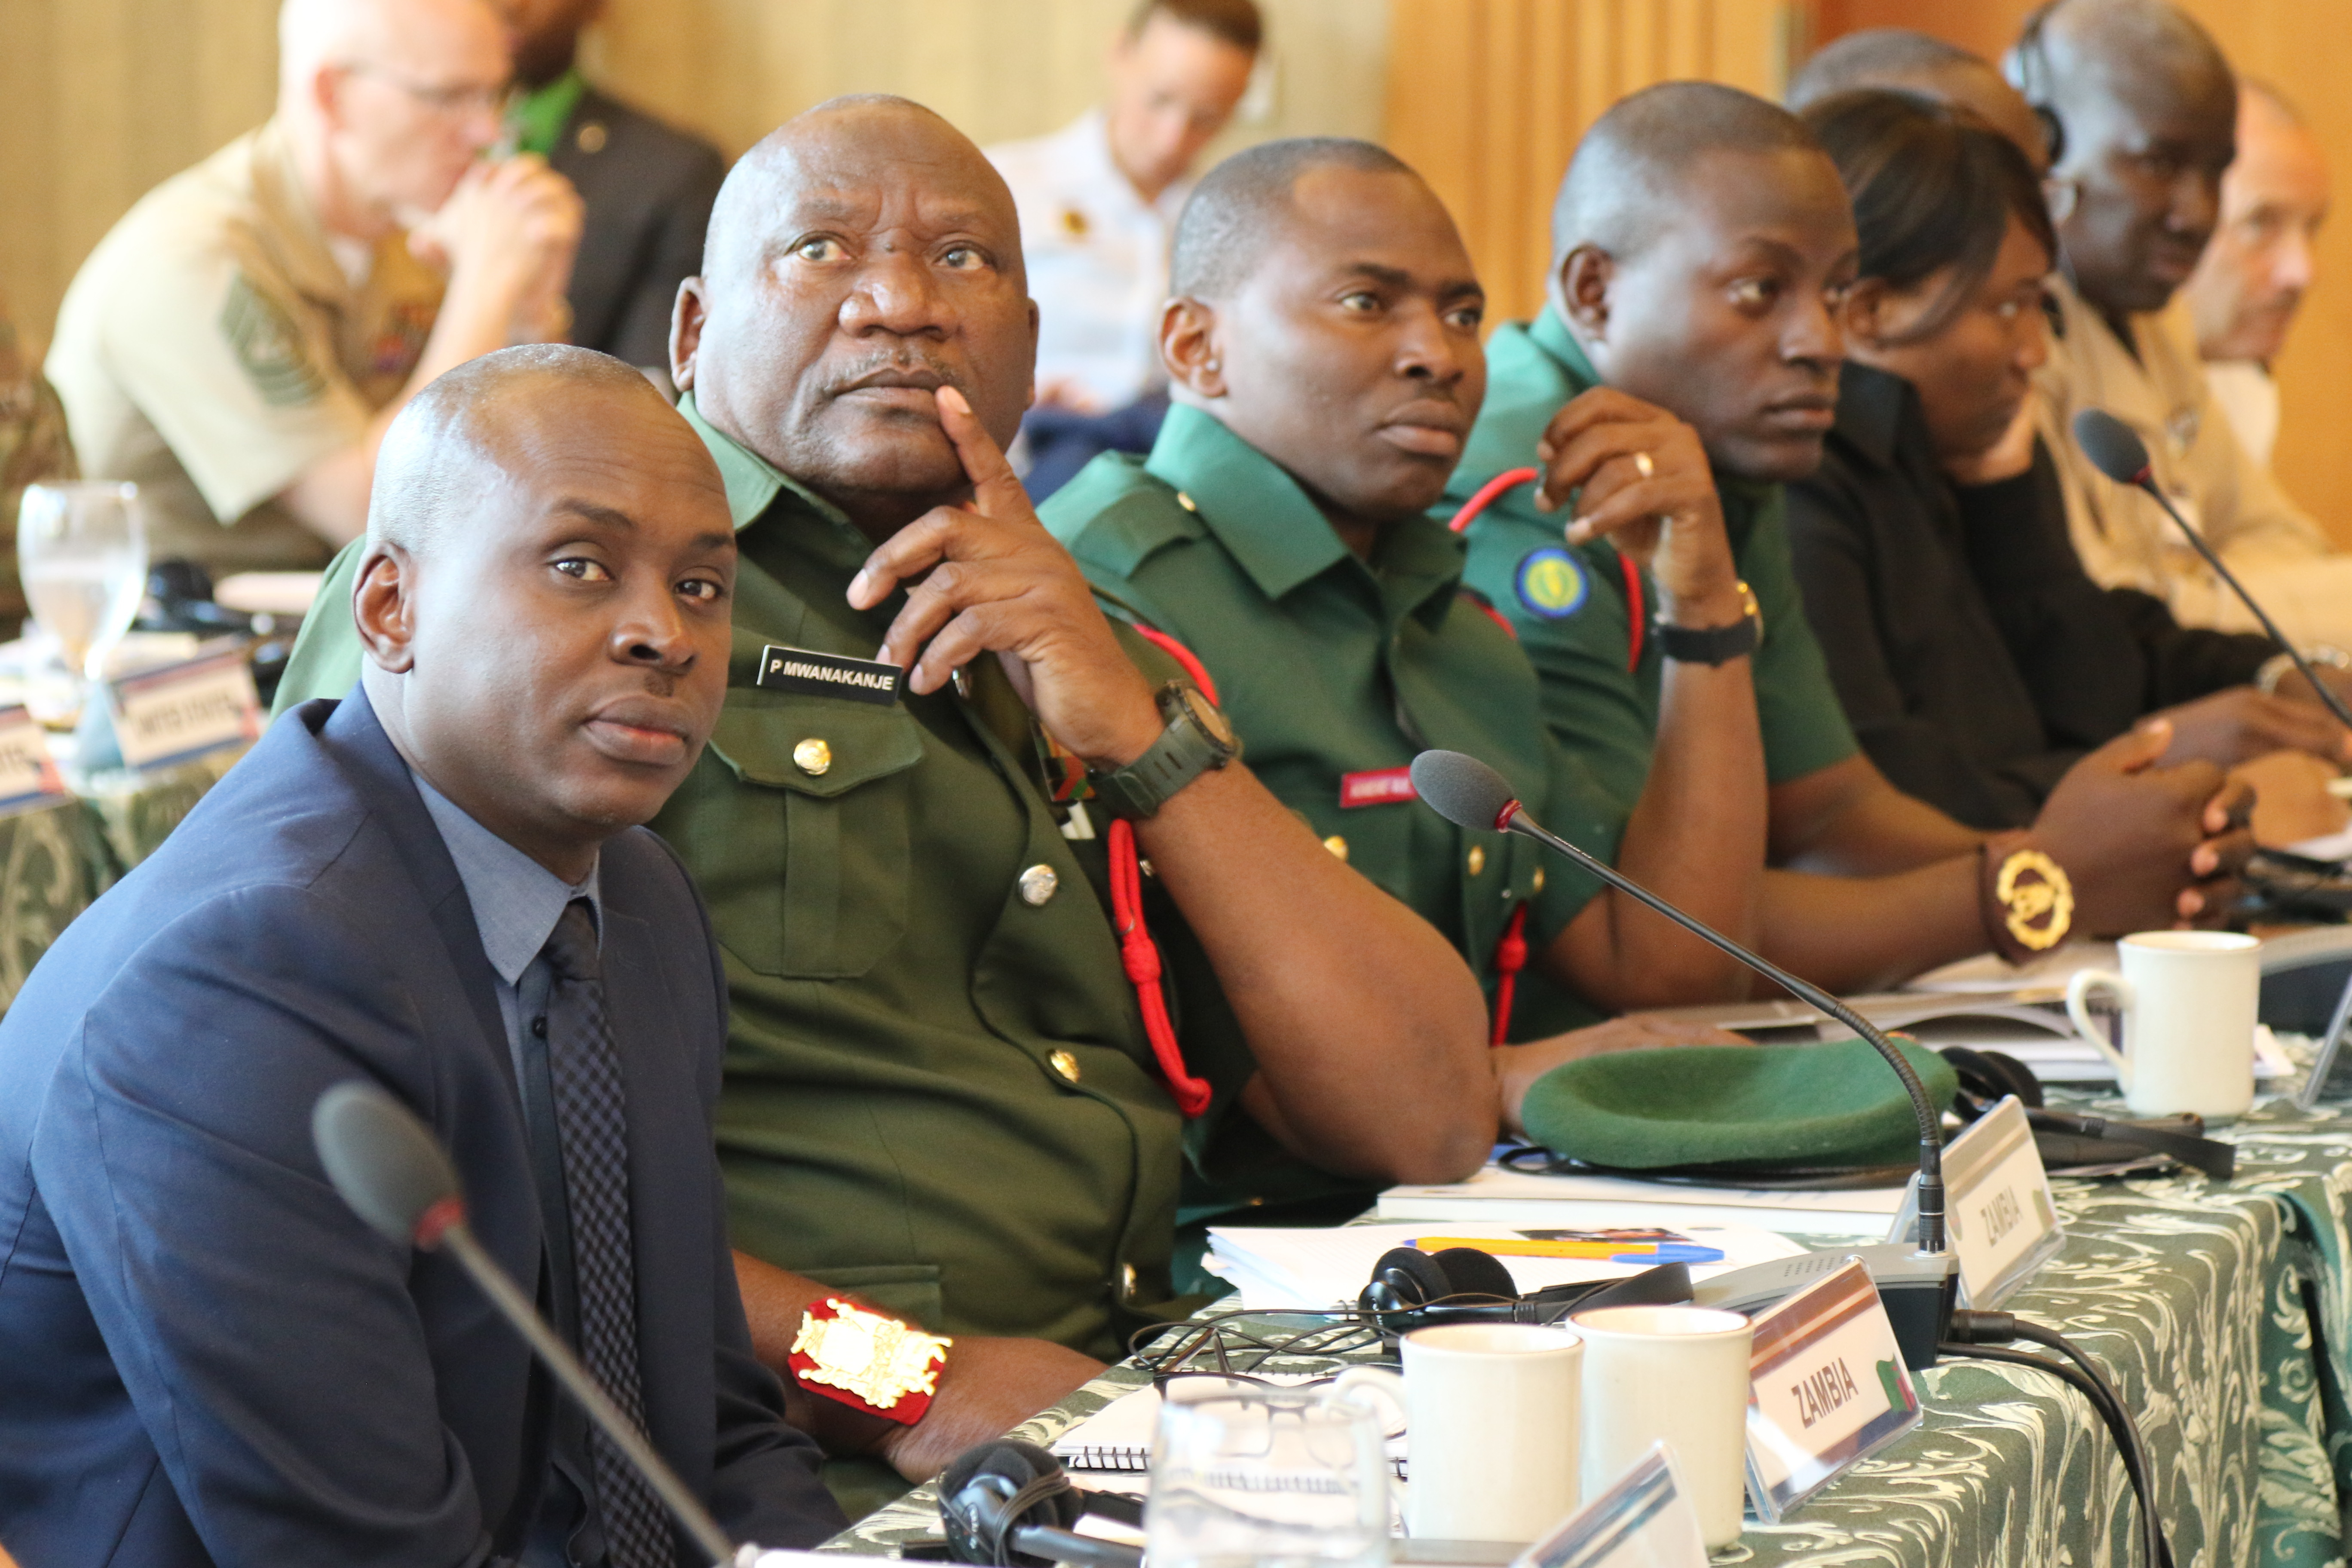 Senior enlisted leaders from Zambia listen to a presentation during the 2018 Africa Senior Enlisted Leader Conference held Oct. 16-19 in Garmisch-Partenkirchen, Germany. ASELC brings together senior enlisted leaders from Africa and the U.S. to discuss shared challenges and opportunities.